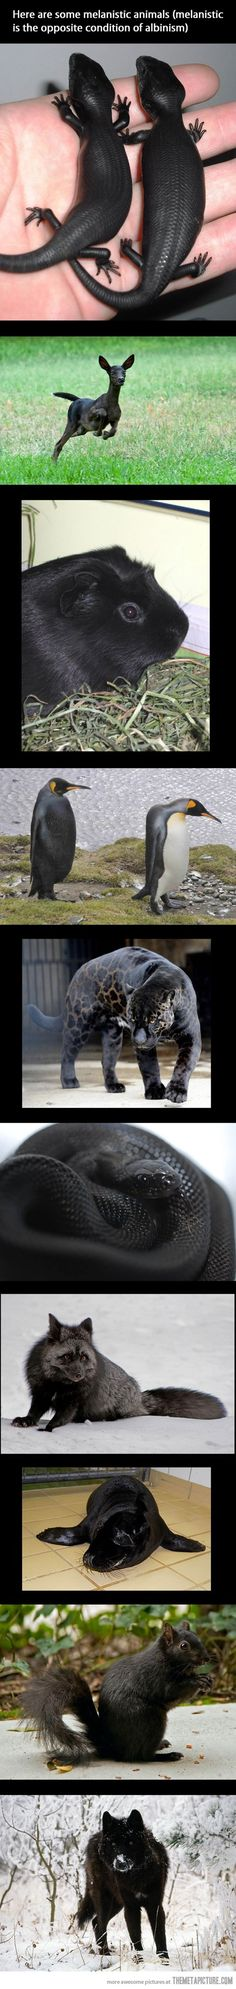 Wild!  I had never heard of melanistic animals, which is the opposite of albinism.  Neato :)